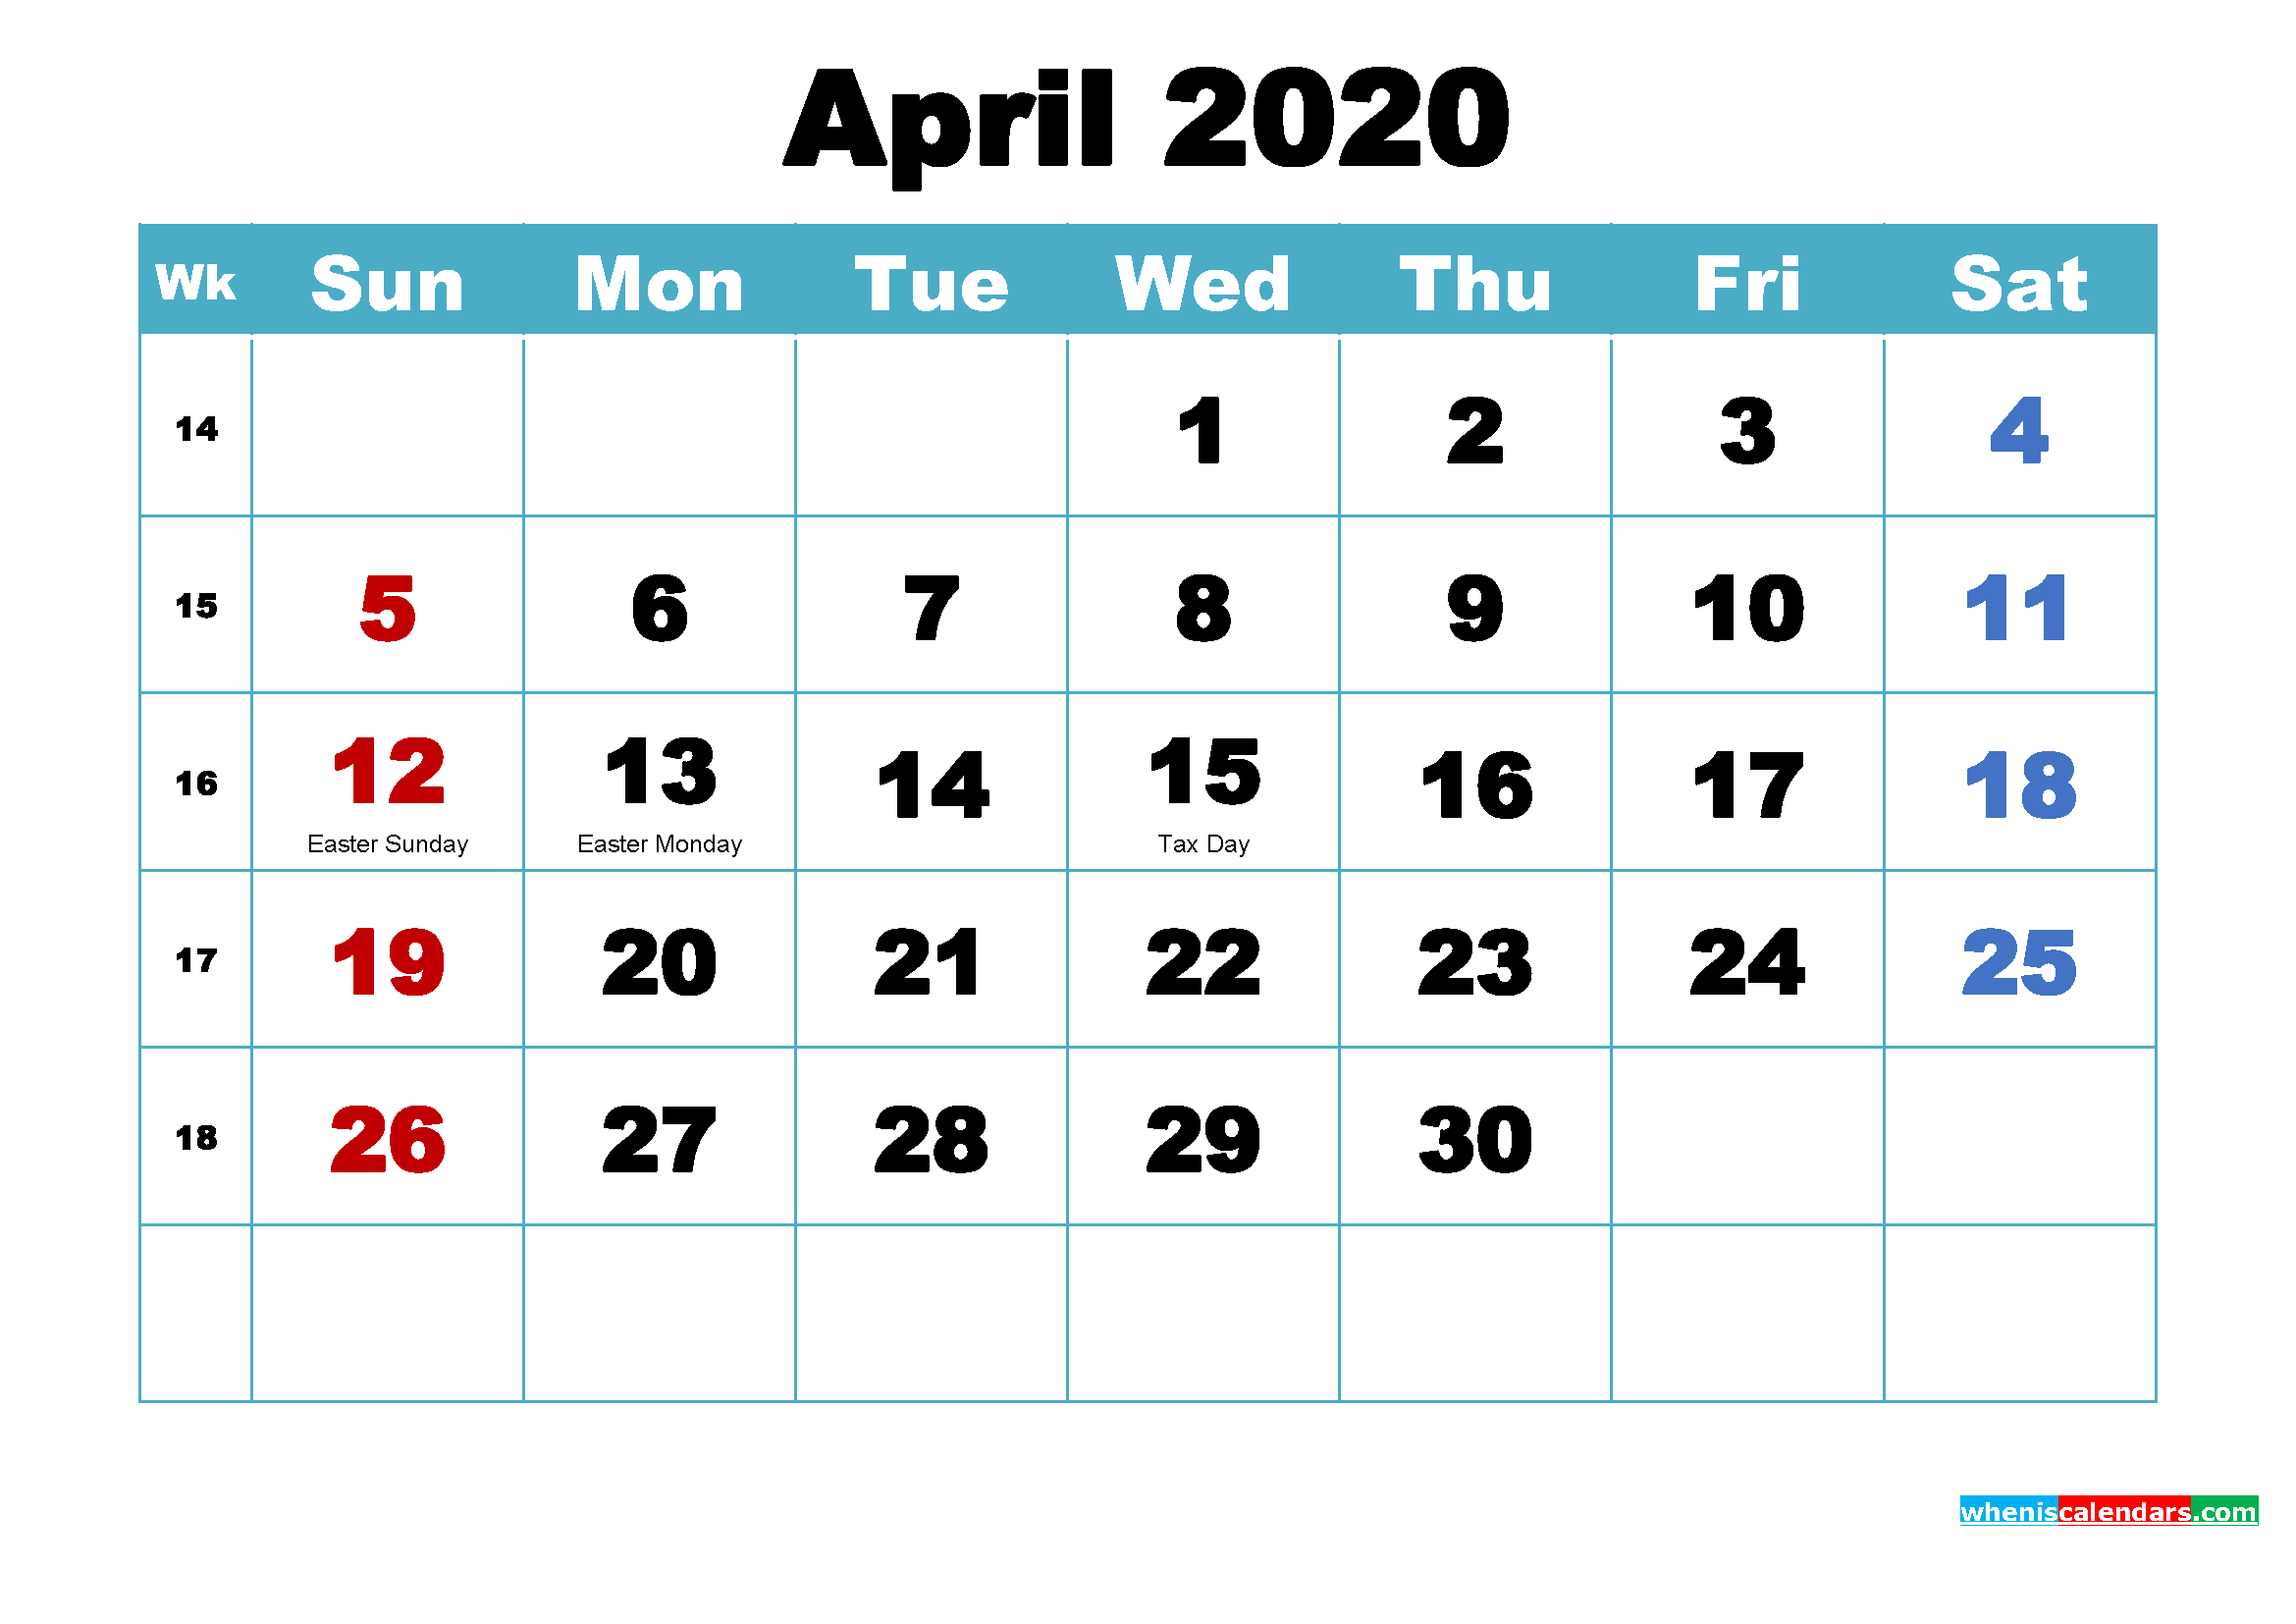 April 2020 Calendar Wallpaper Free Download Free Printable 2020